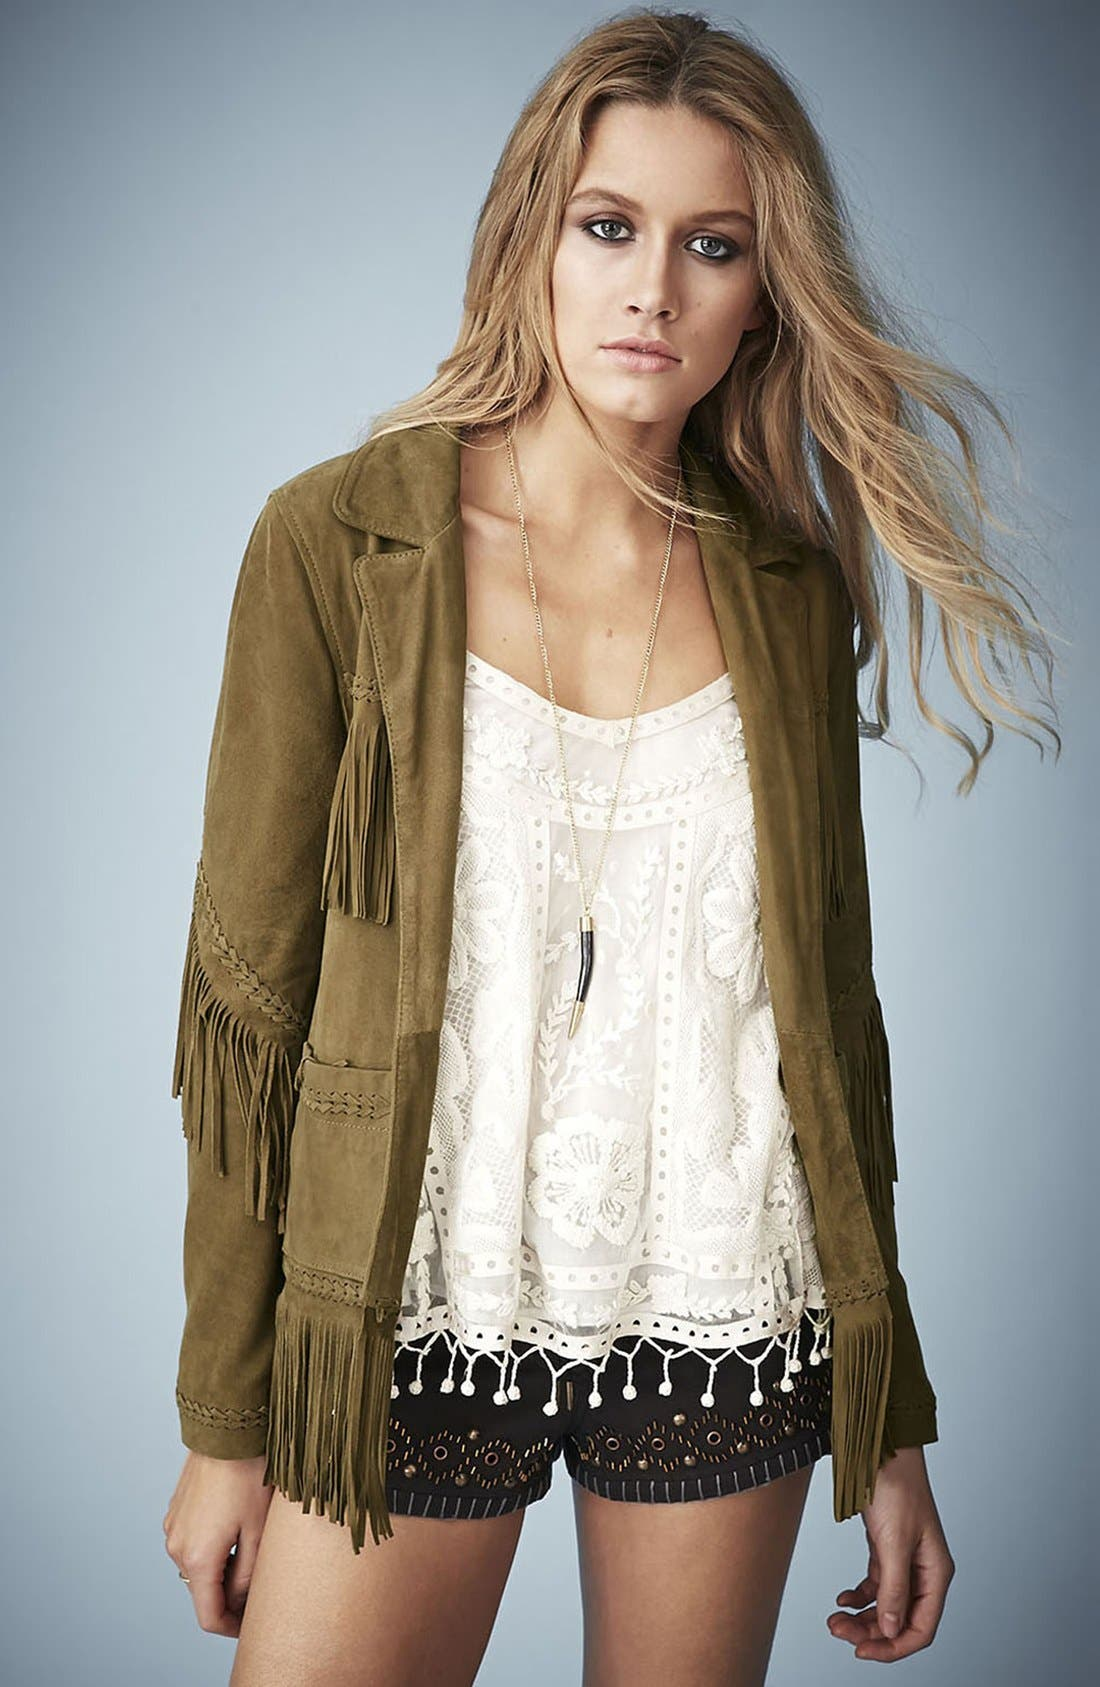 Kate Moss for Topshop Fringed Suede Jacket,                         Main,                         color, Khaki